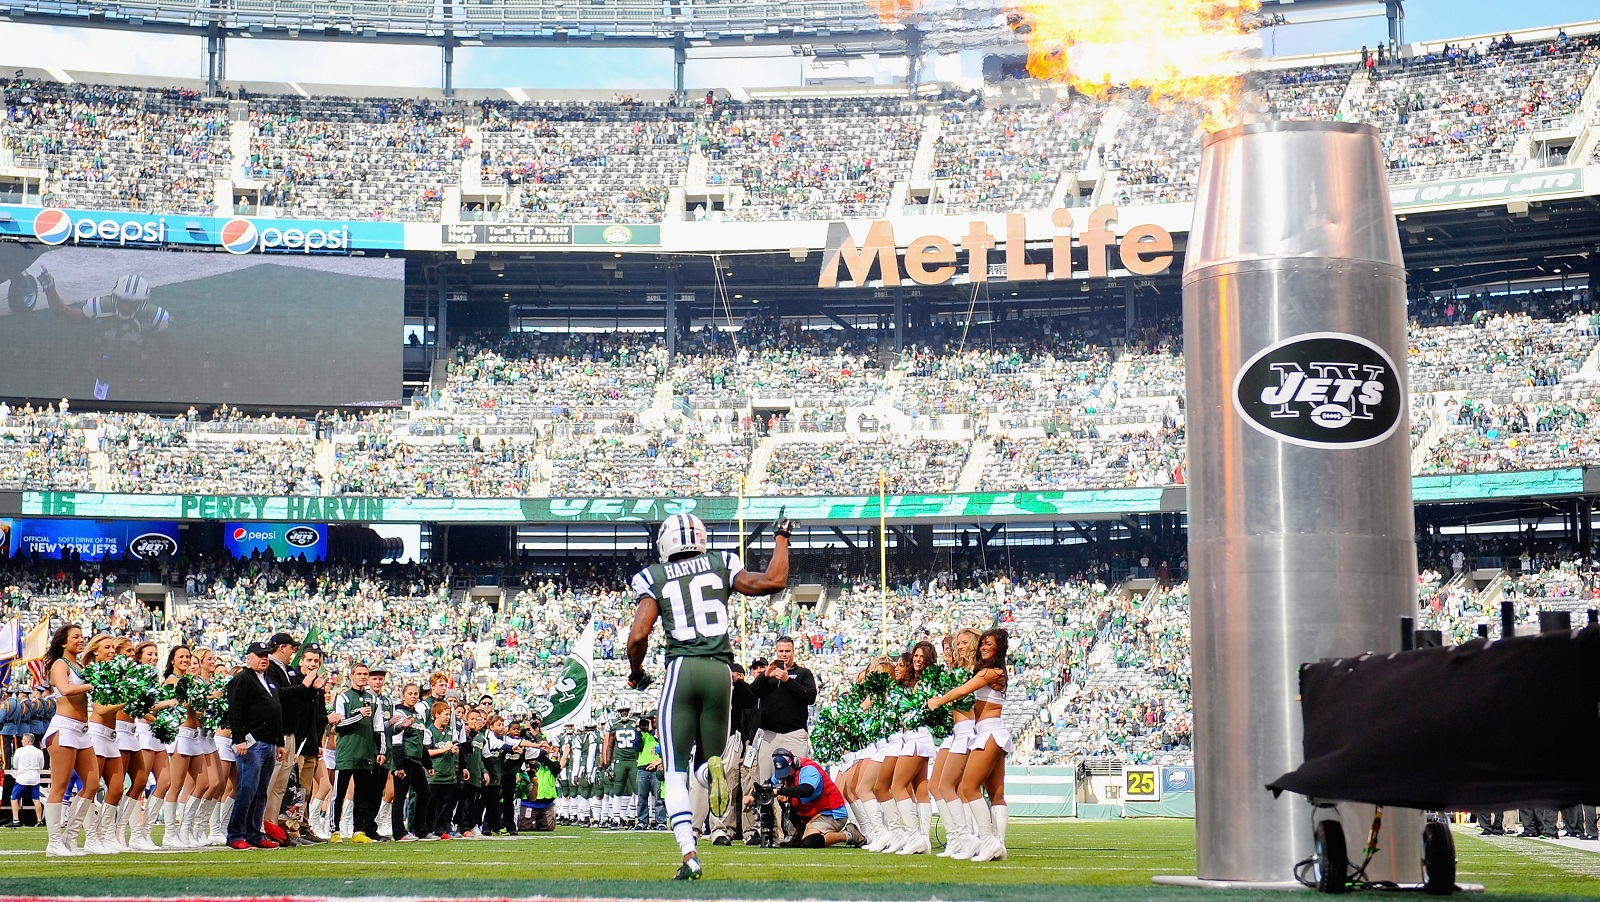 Both the New York Jets and New York Giants play in East Rutherford, NJ, which is not in New York. (Alex Goodlett/Getty Images)